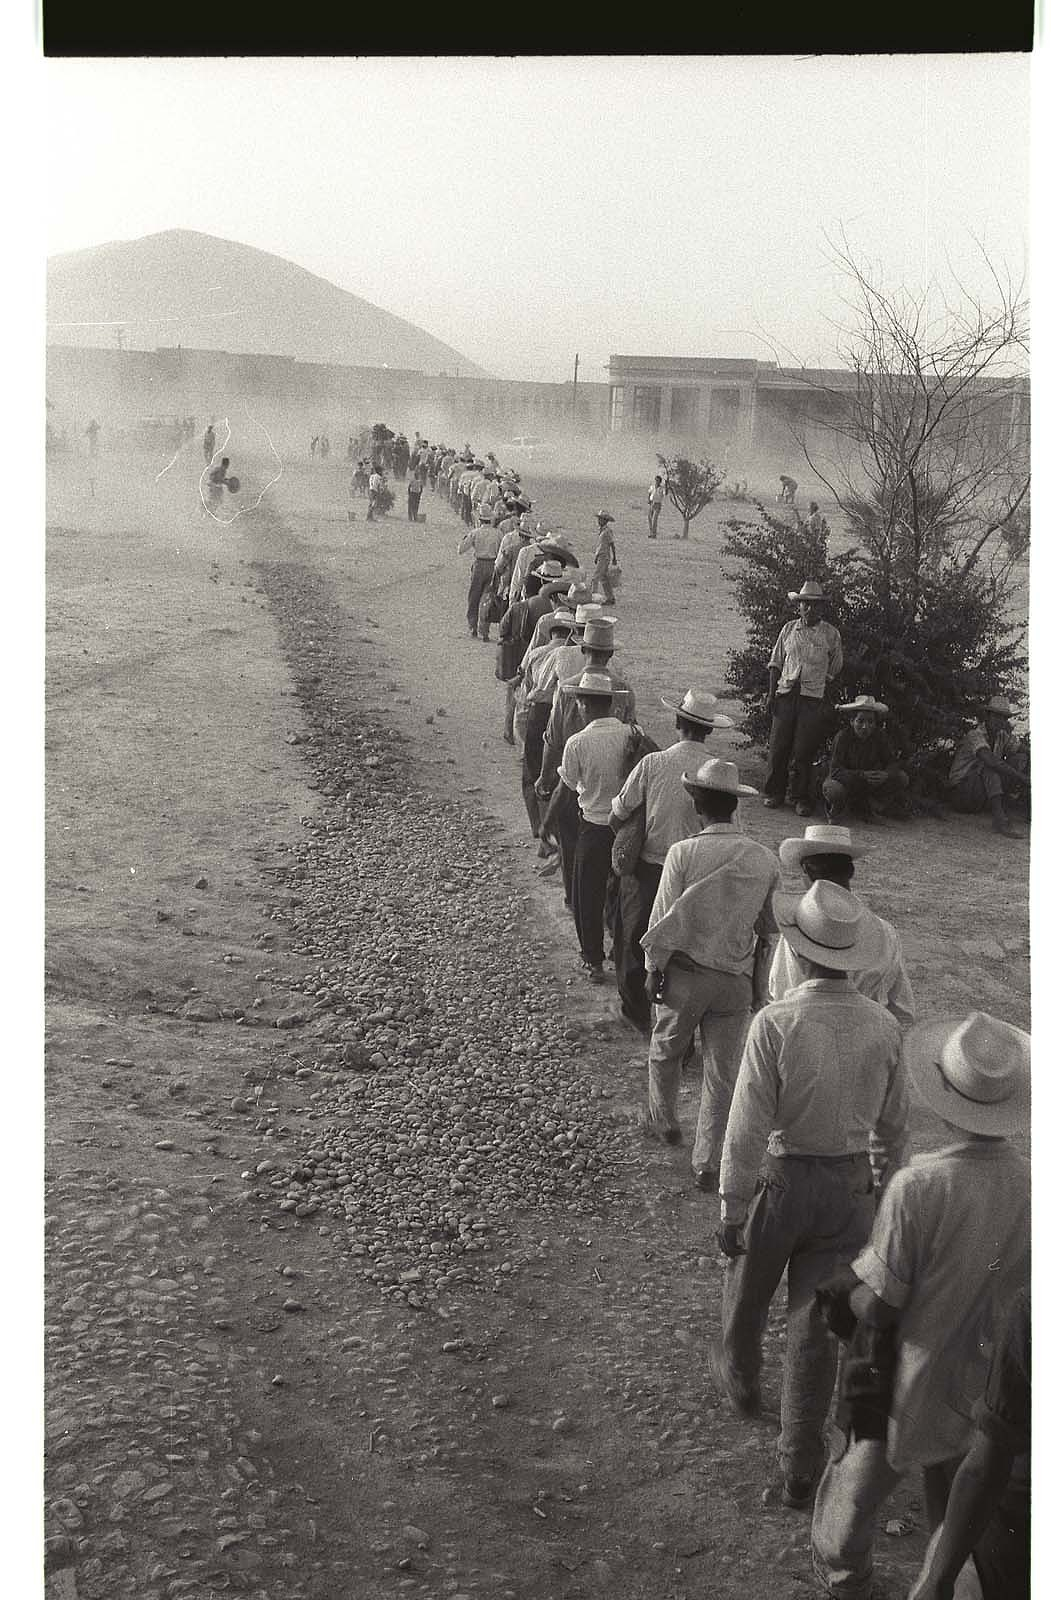 Braceros walk in line in a sandstorm at the Monterrey Processing Center, Mexico.